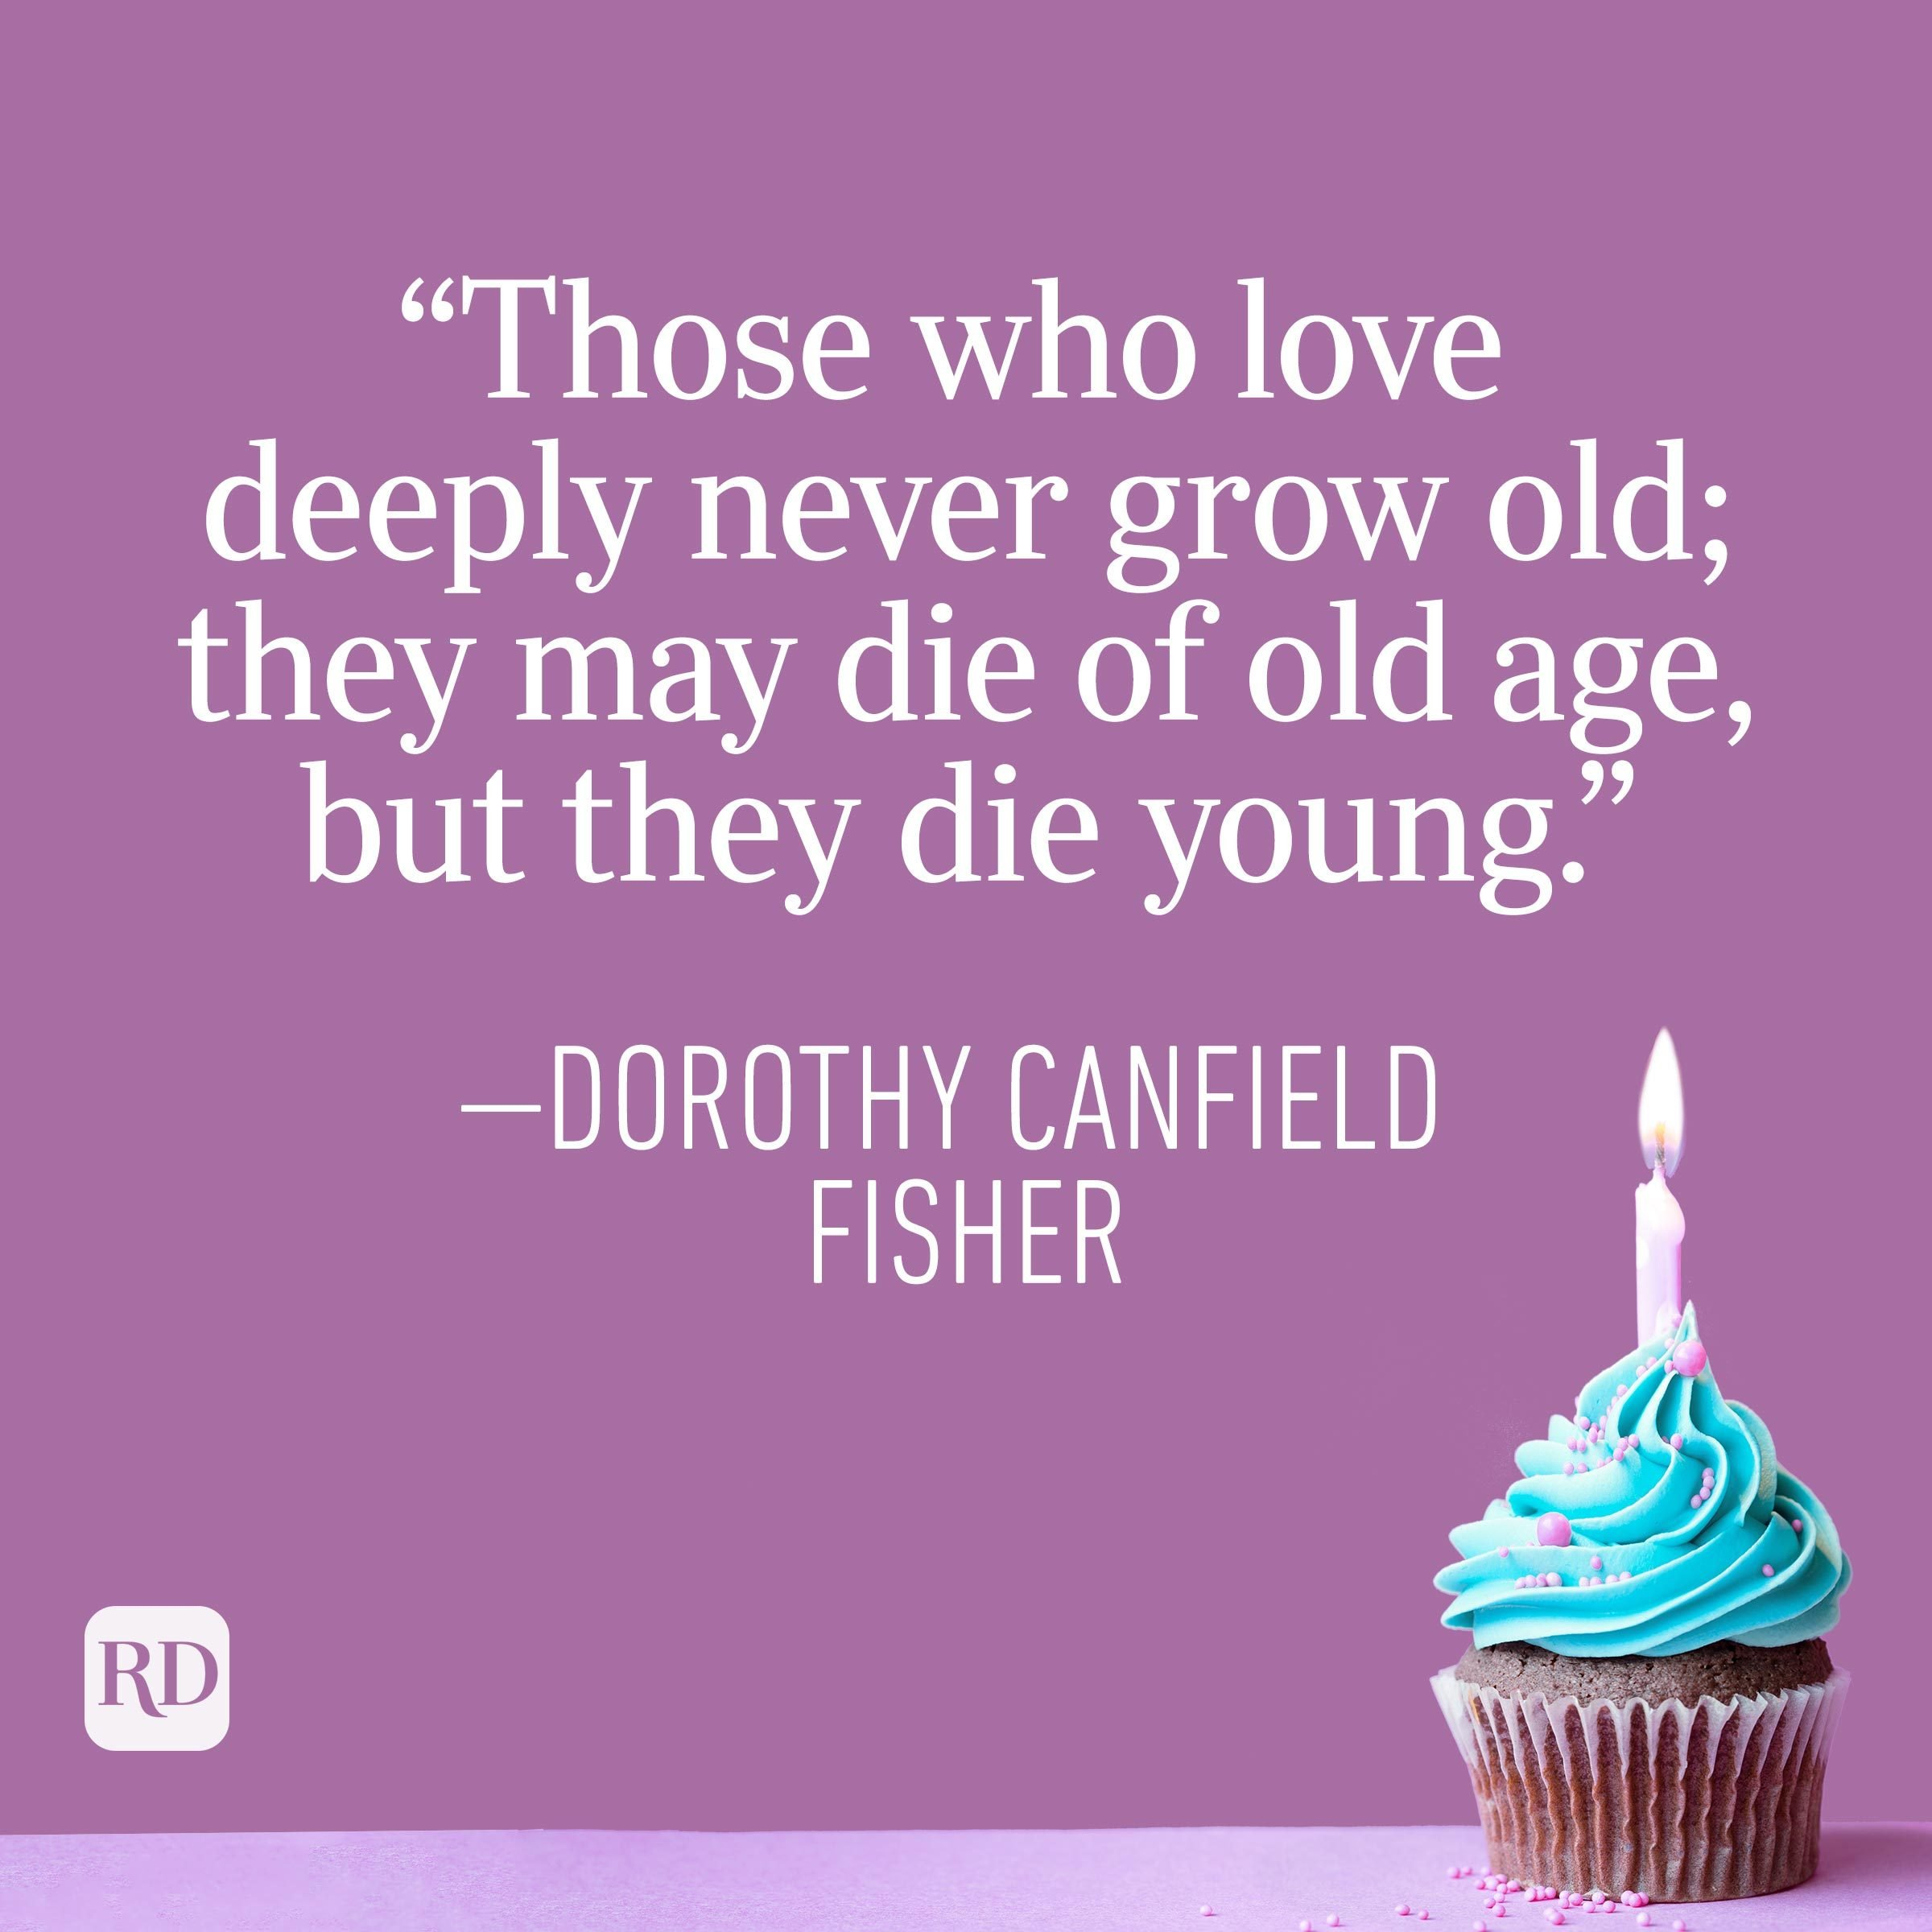 """""""Those who love deeply never grow old; they may die of old age, but they die young."""" —Dorothy Canfield Fisher"""